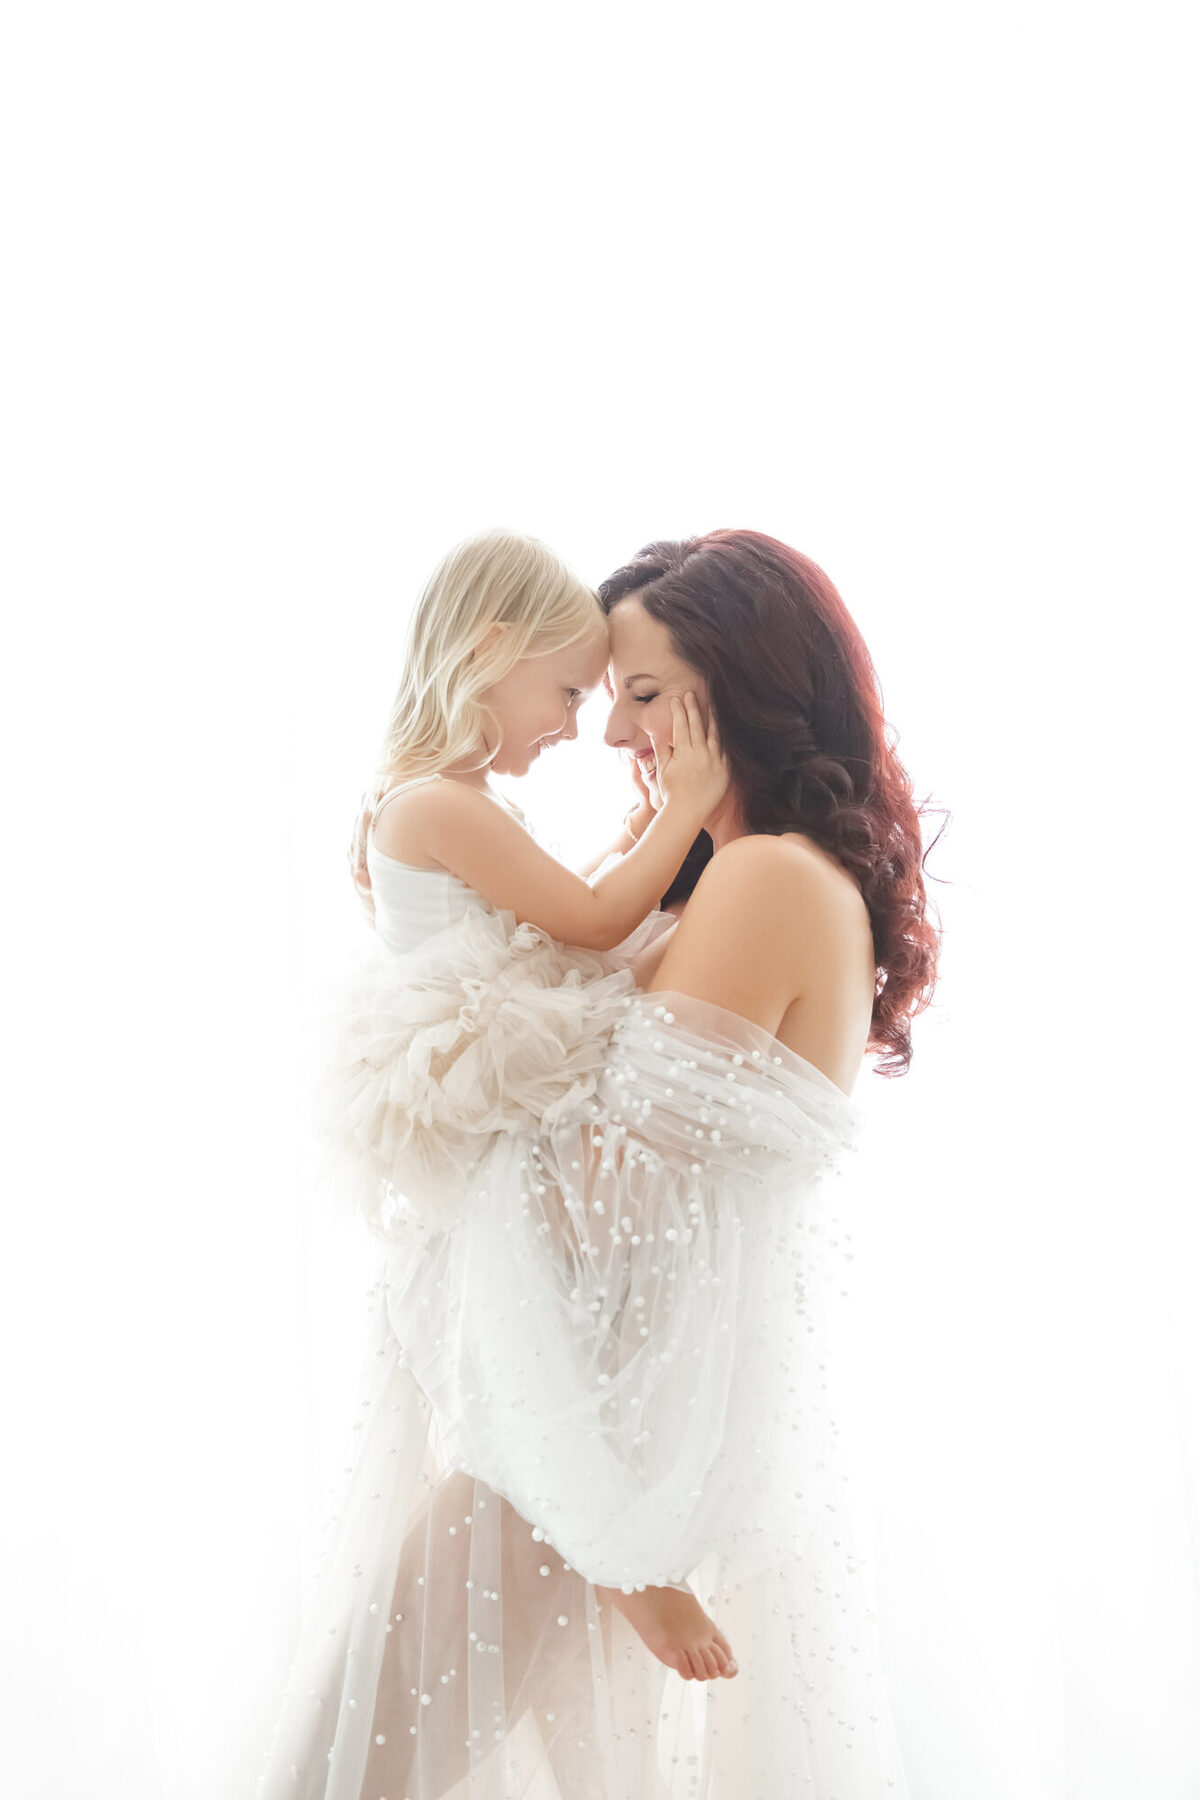 Reaj Roberts Photography Scottsdale maternity photographer pregnancy photos light and airy mom and daugther